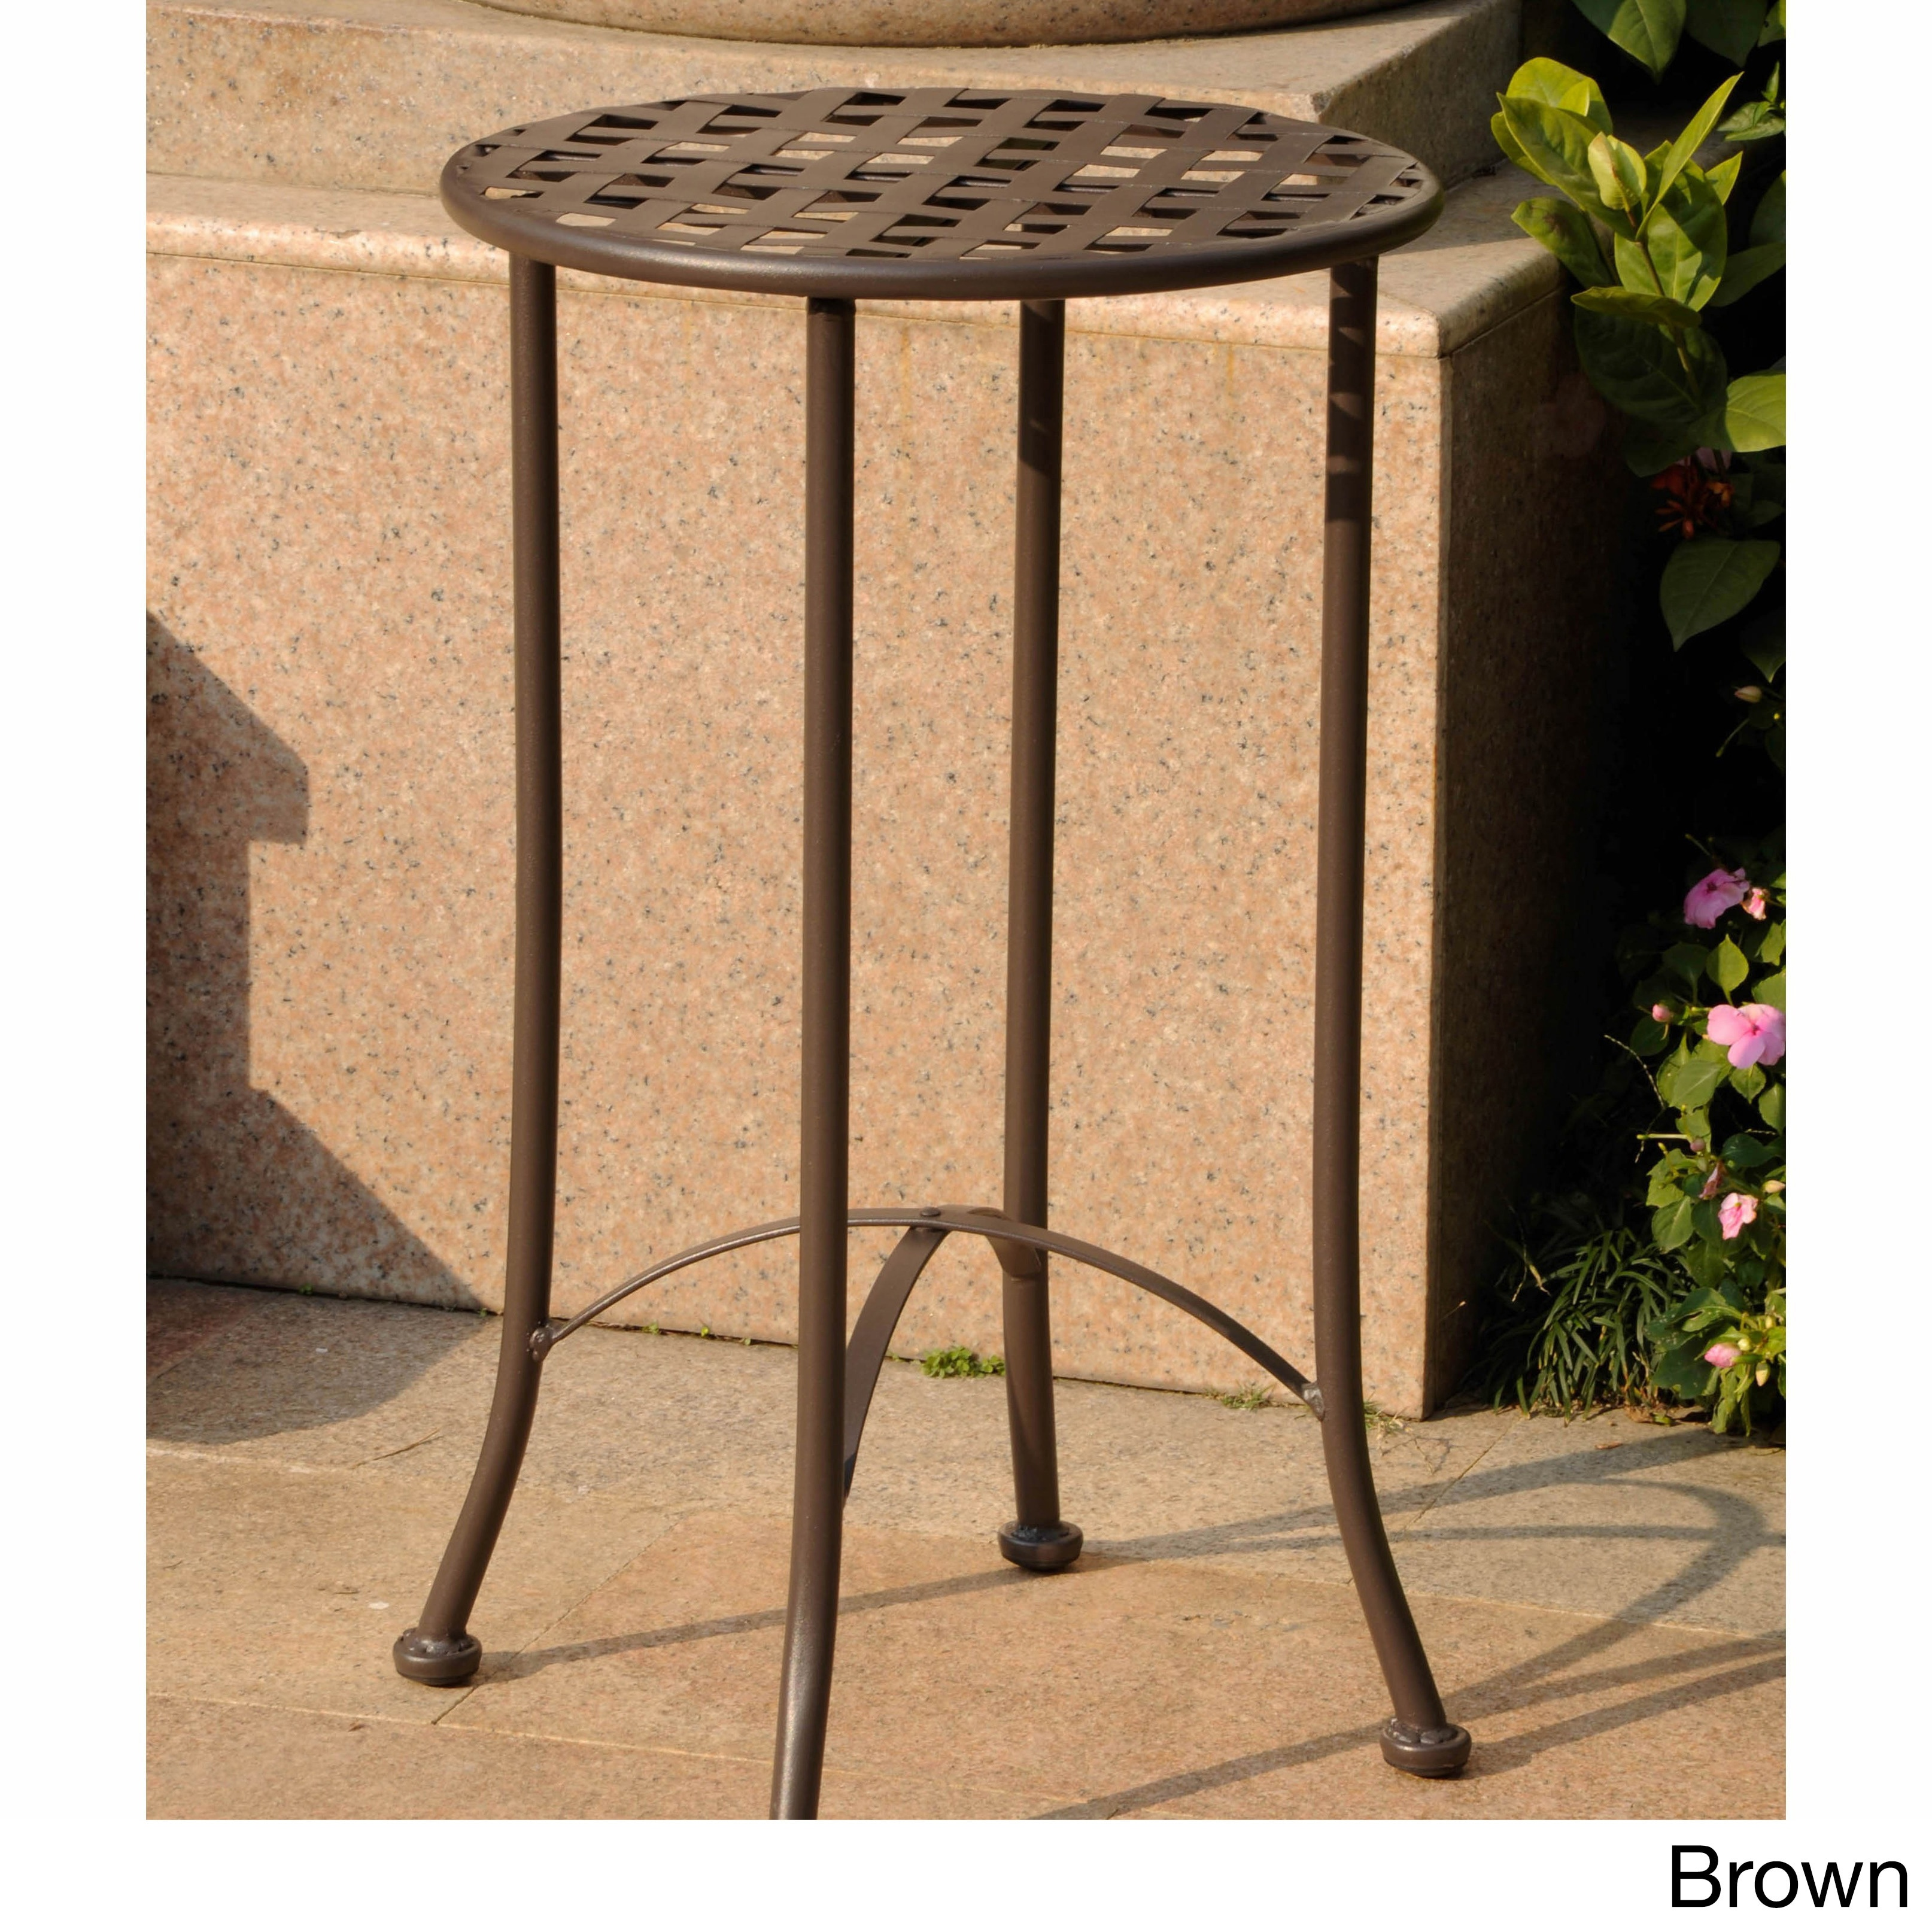 brown outdoor coffee side tables our international caravan mandalay inch patio table bombay outdoors pineapple umbrella accent best furniture hallway lamp round cloths wyatt